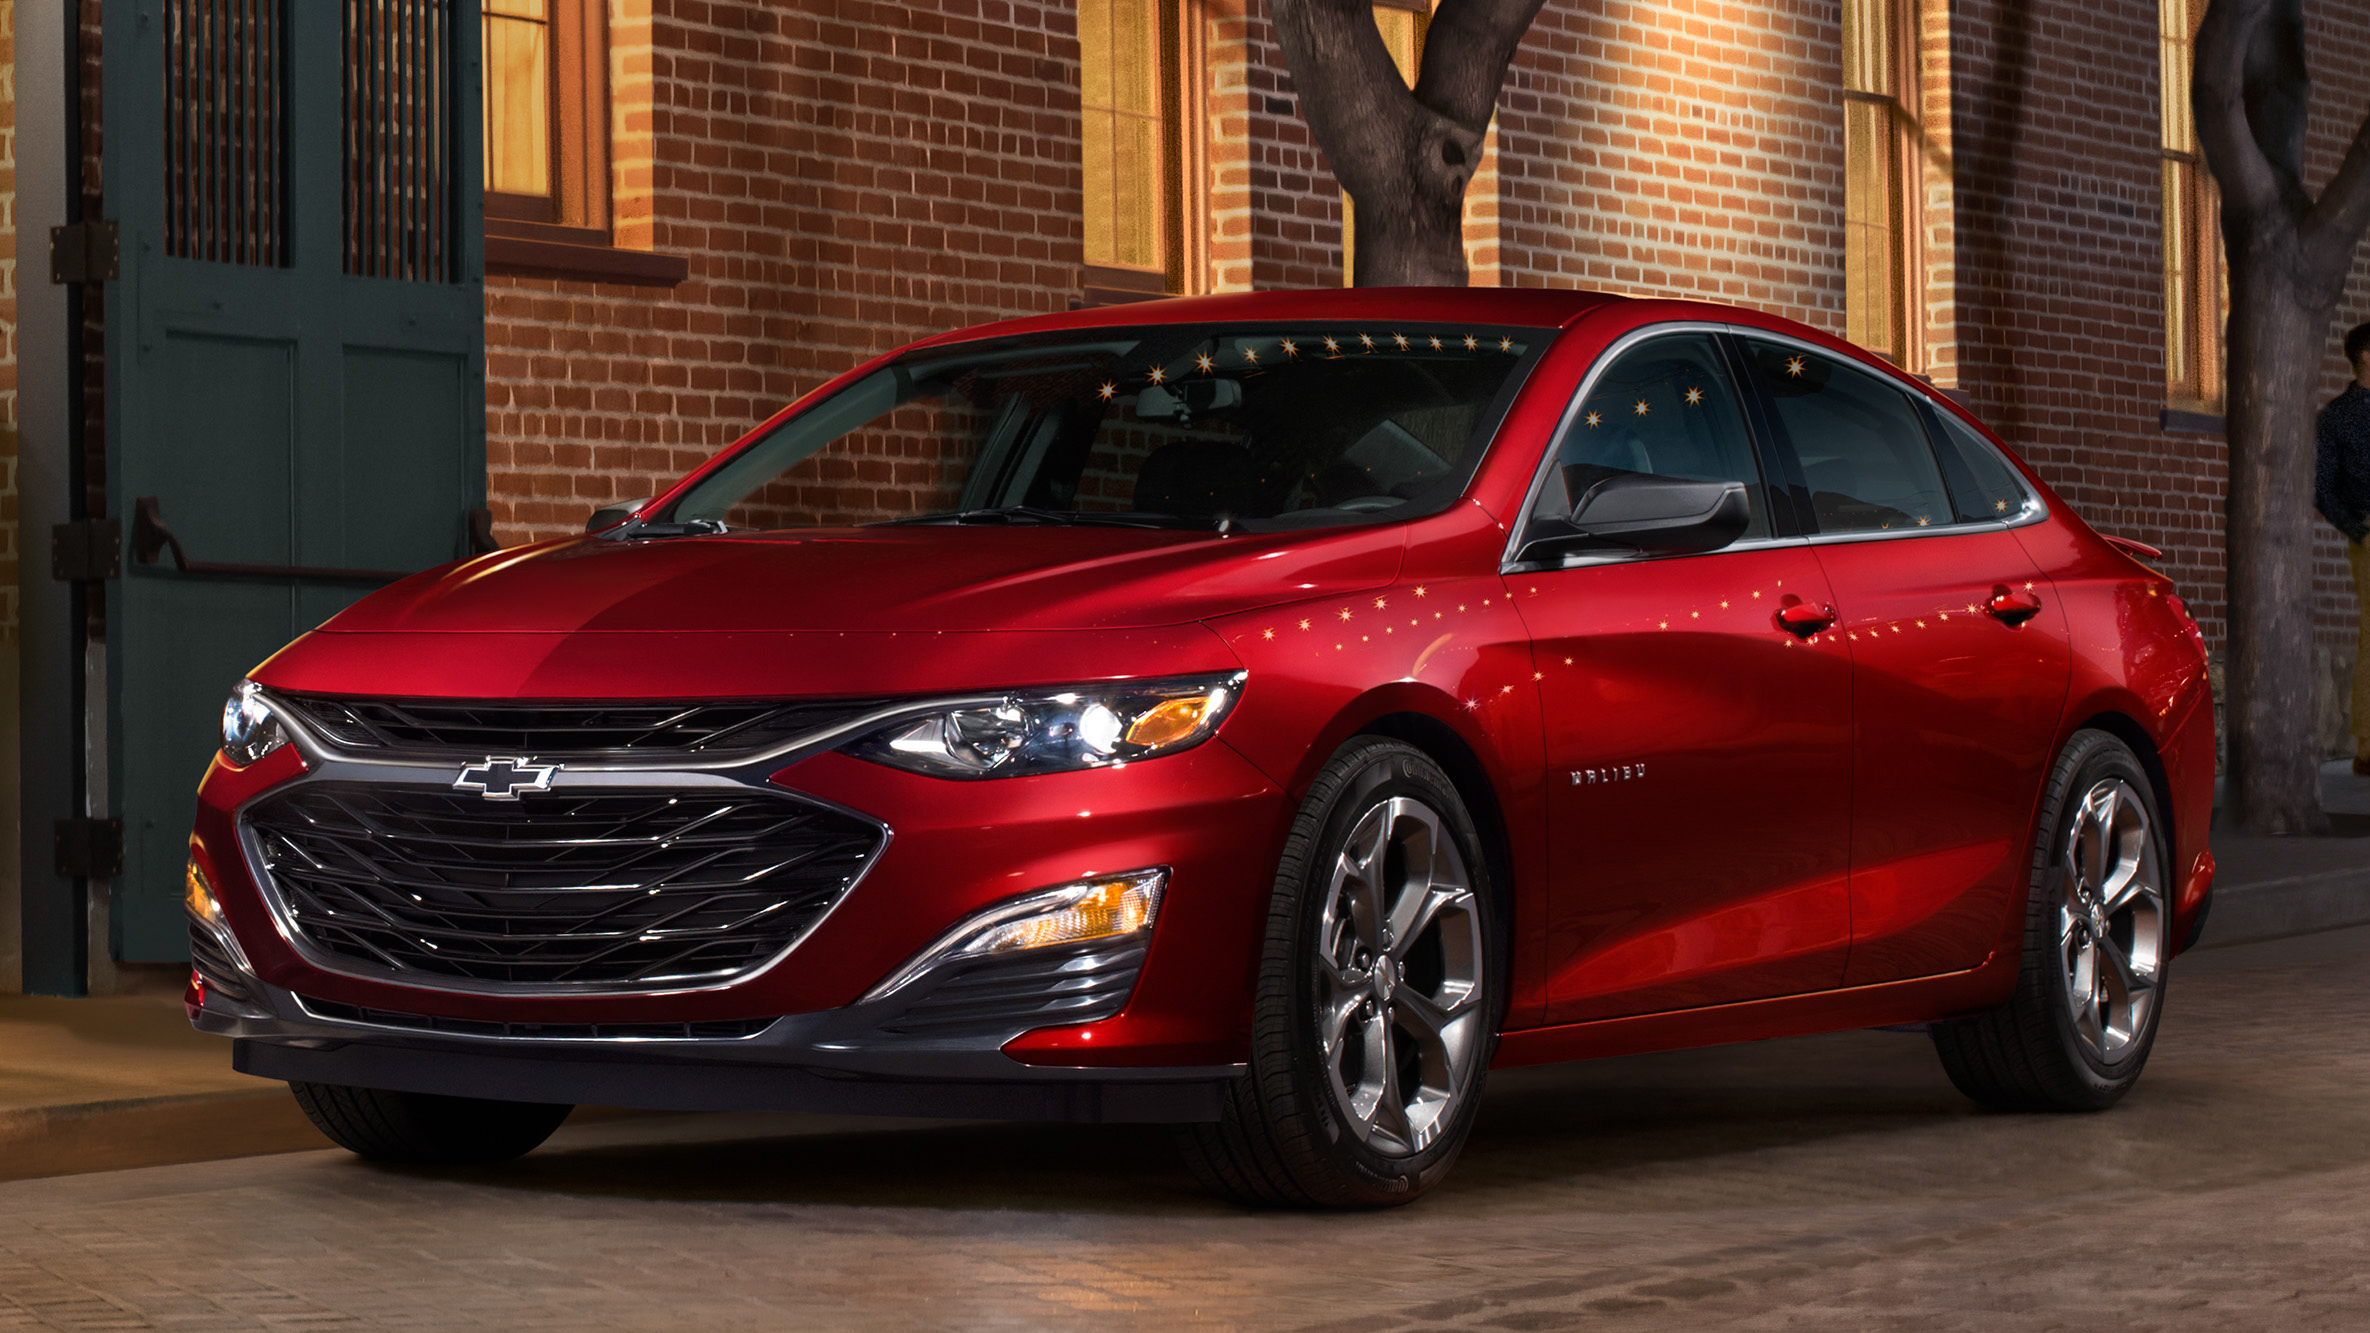 2018 Chevy Volt >> 2019 Chevrolet Malibu facelift – new face and RS trim Paul Tan - Image 803738